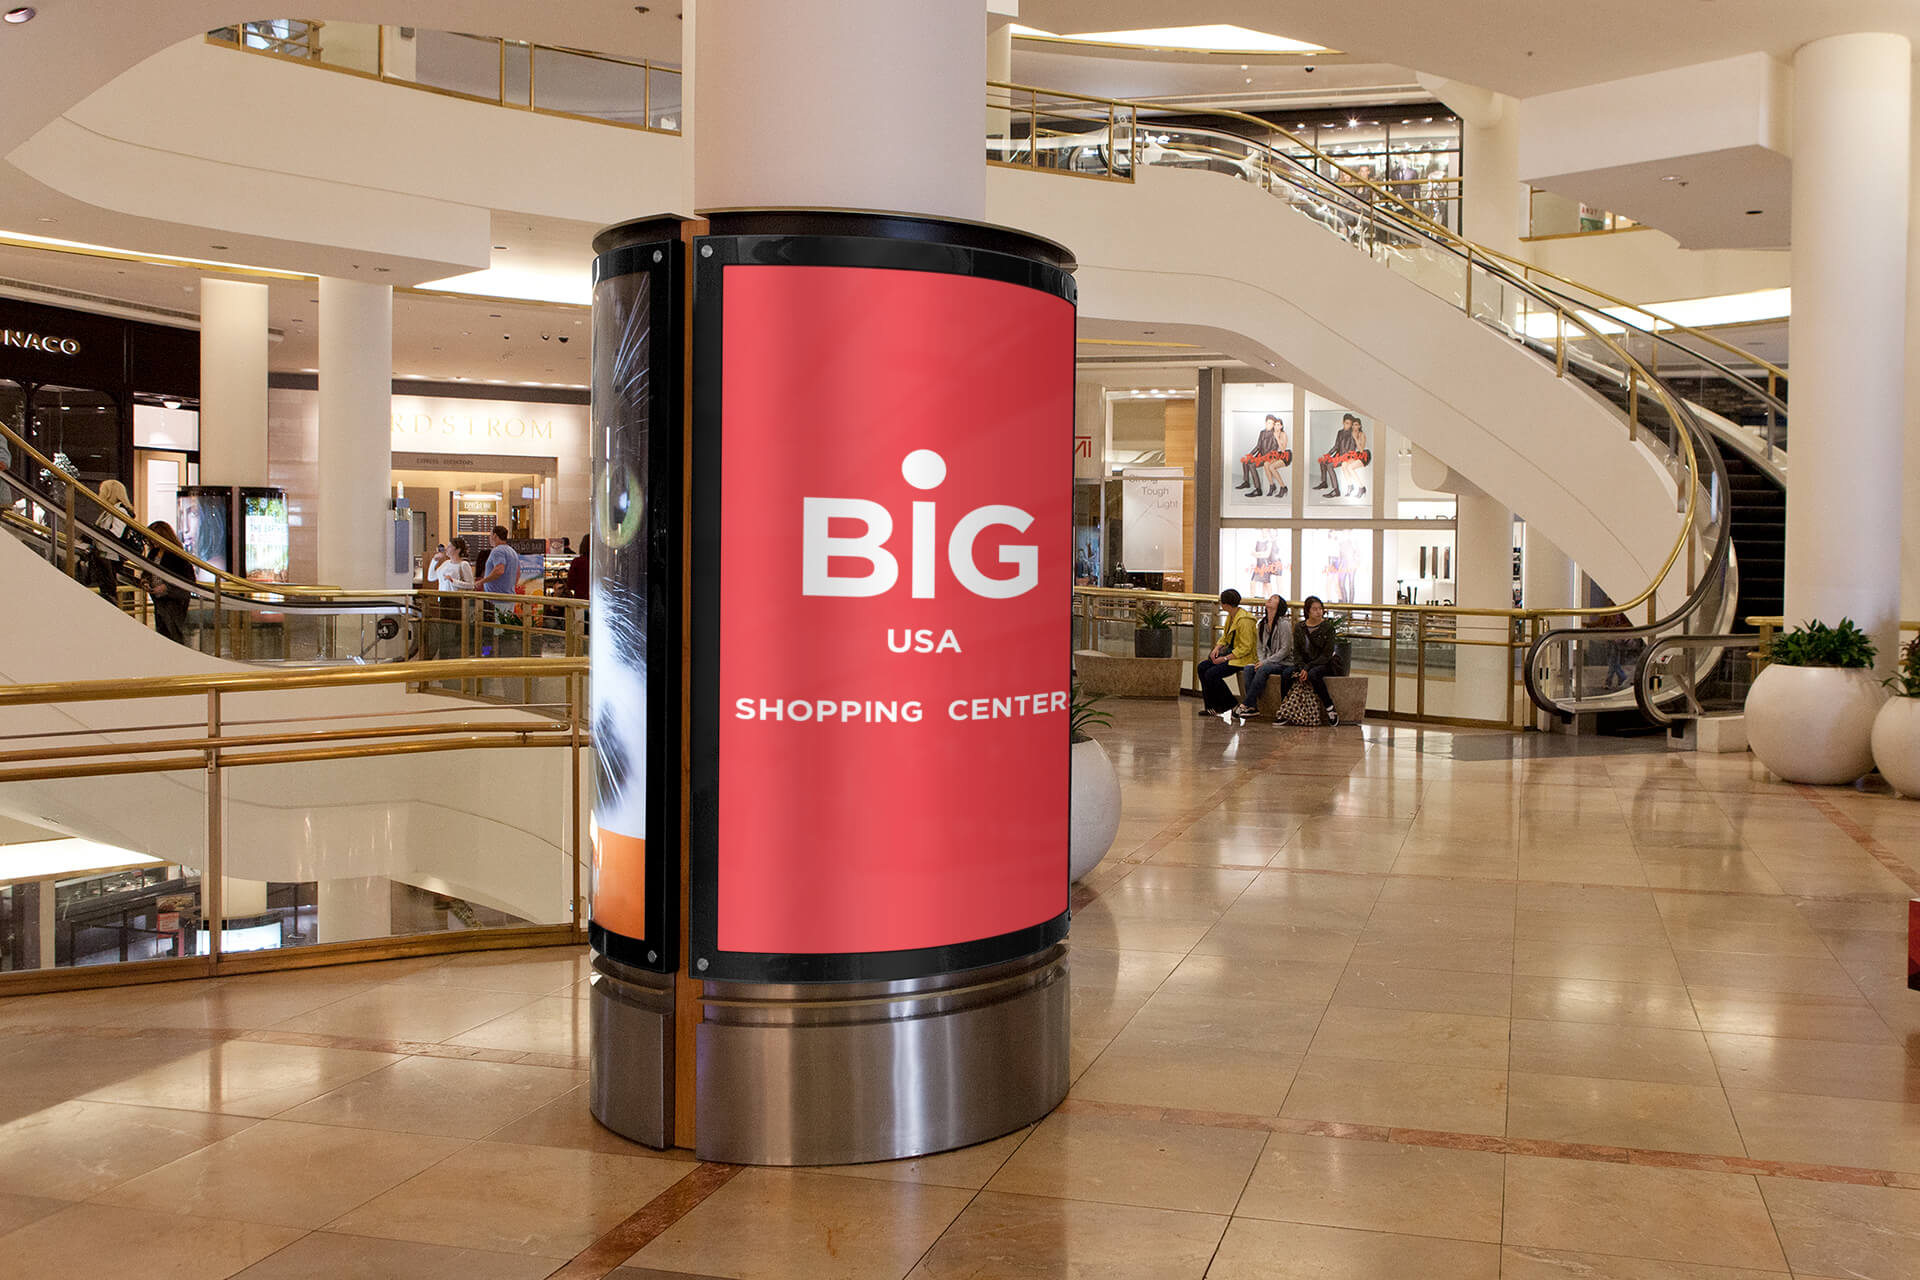 Big Red Shopping Centers USA